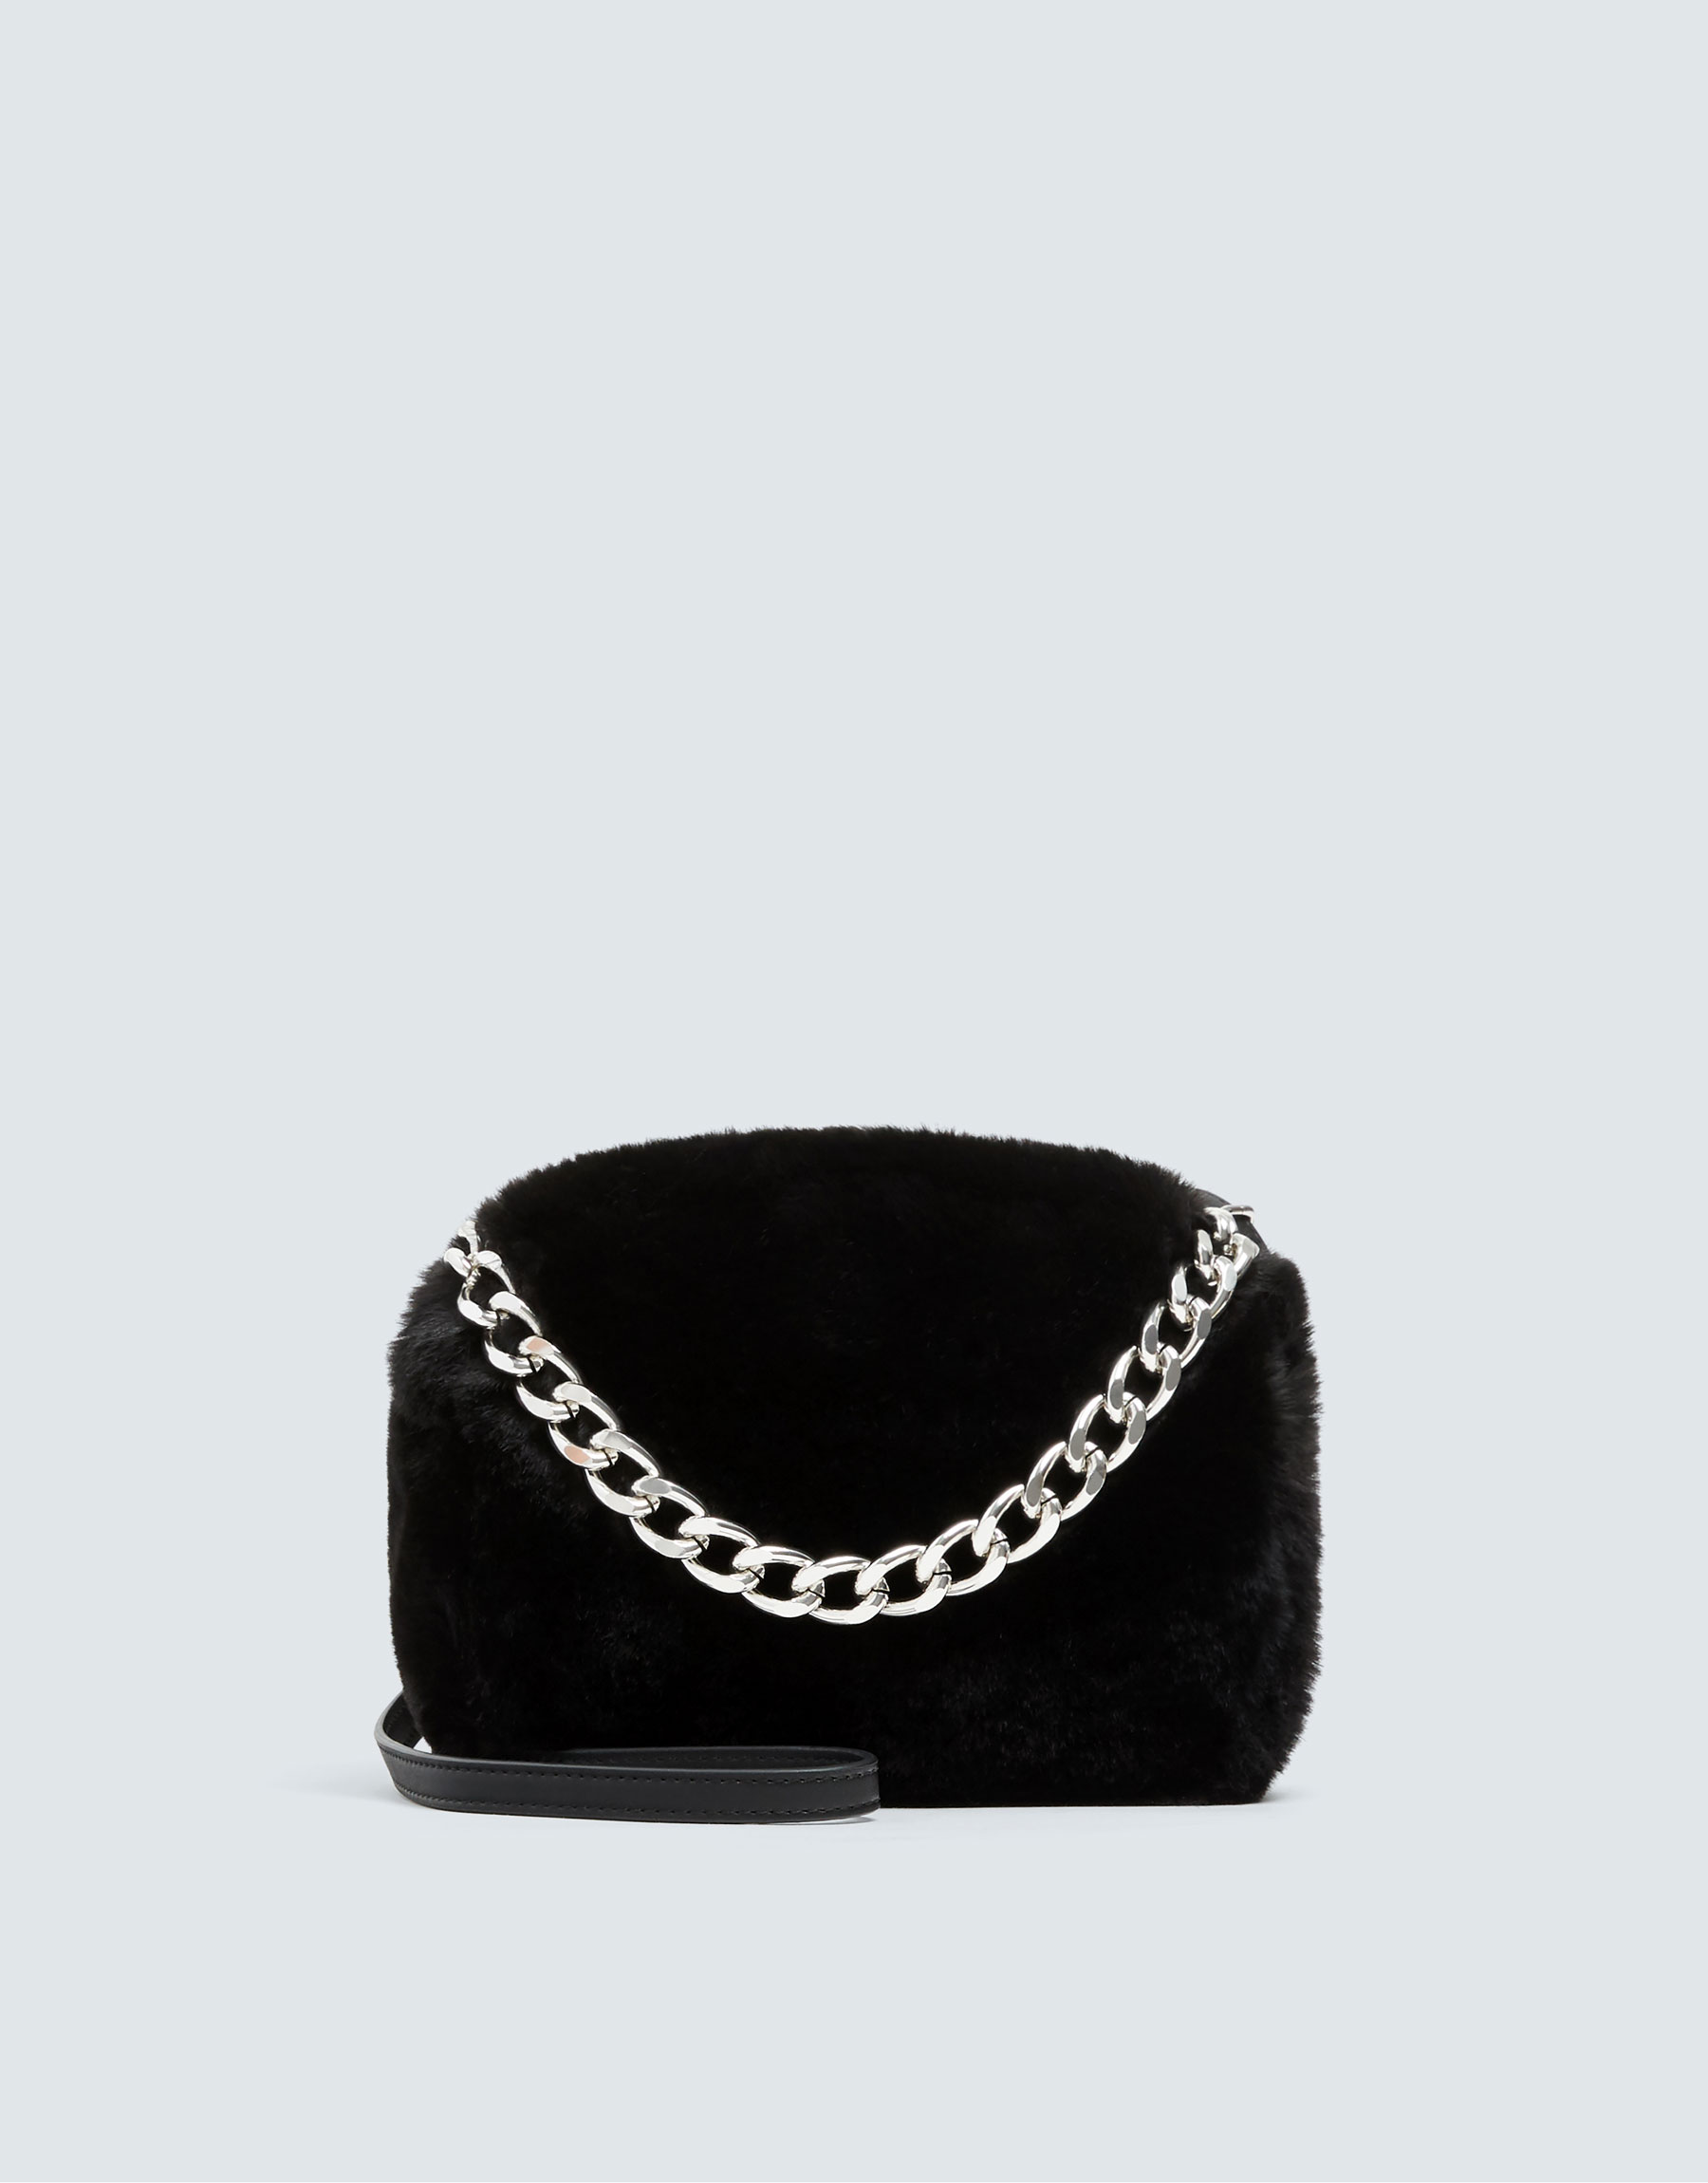 Faux fur crossbody bag with chain detail - PULL BEAR 160e25545f501